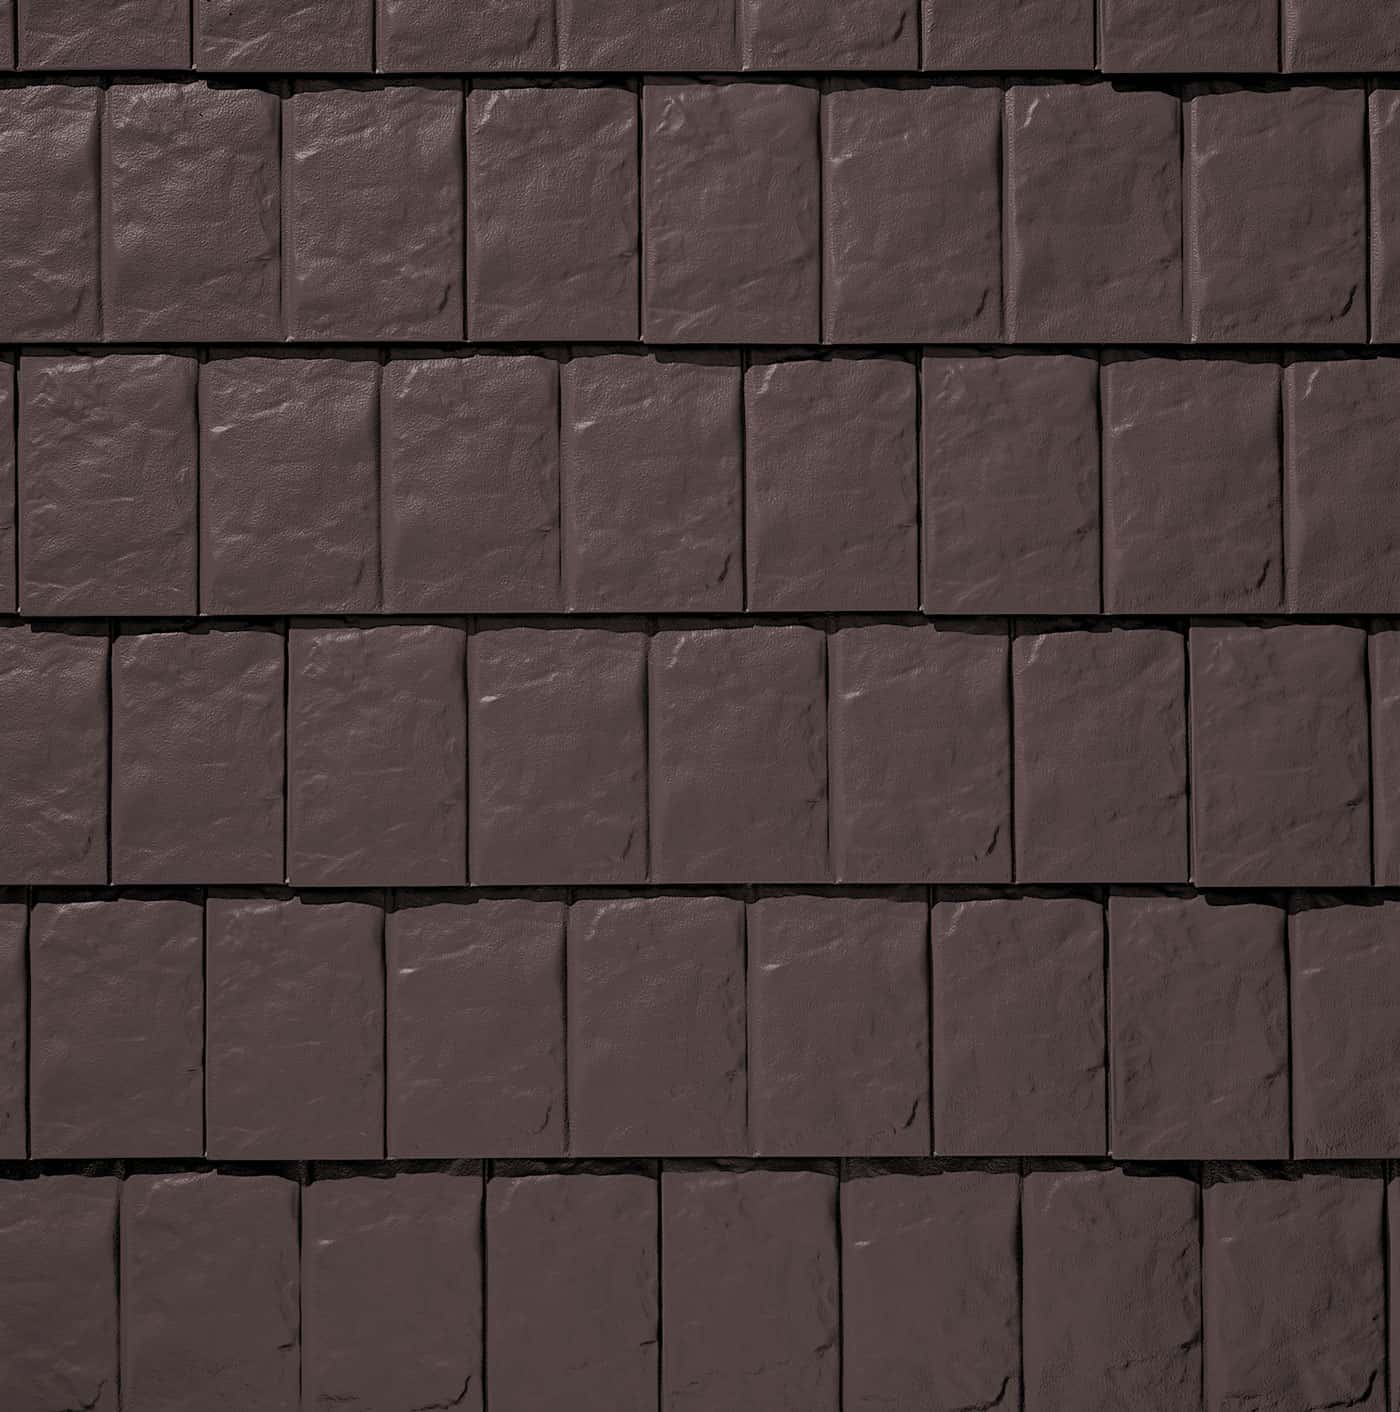 TAMKO Metalworks Stonecrest Slate Timber Brown Swatch